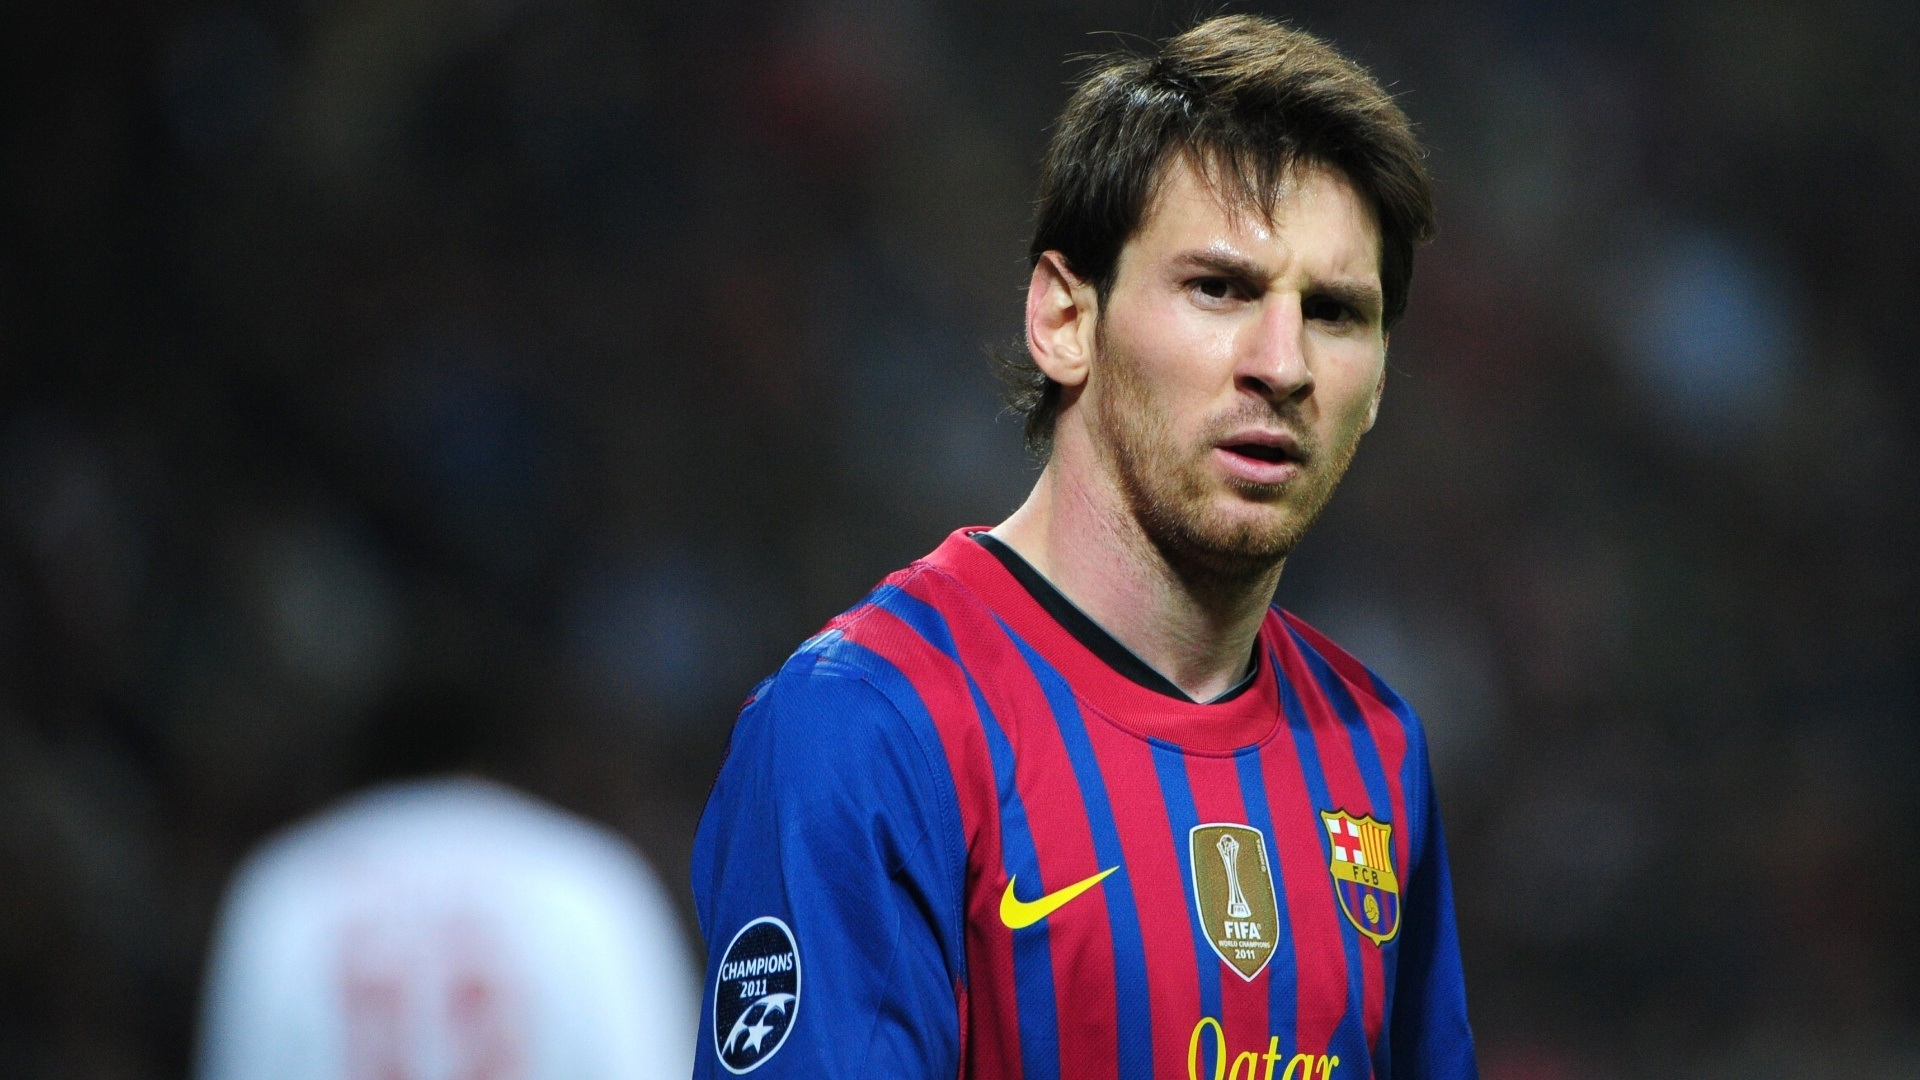 Download free HD Messi 3D Free Computer Wallpaper, image